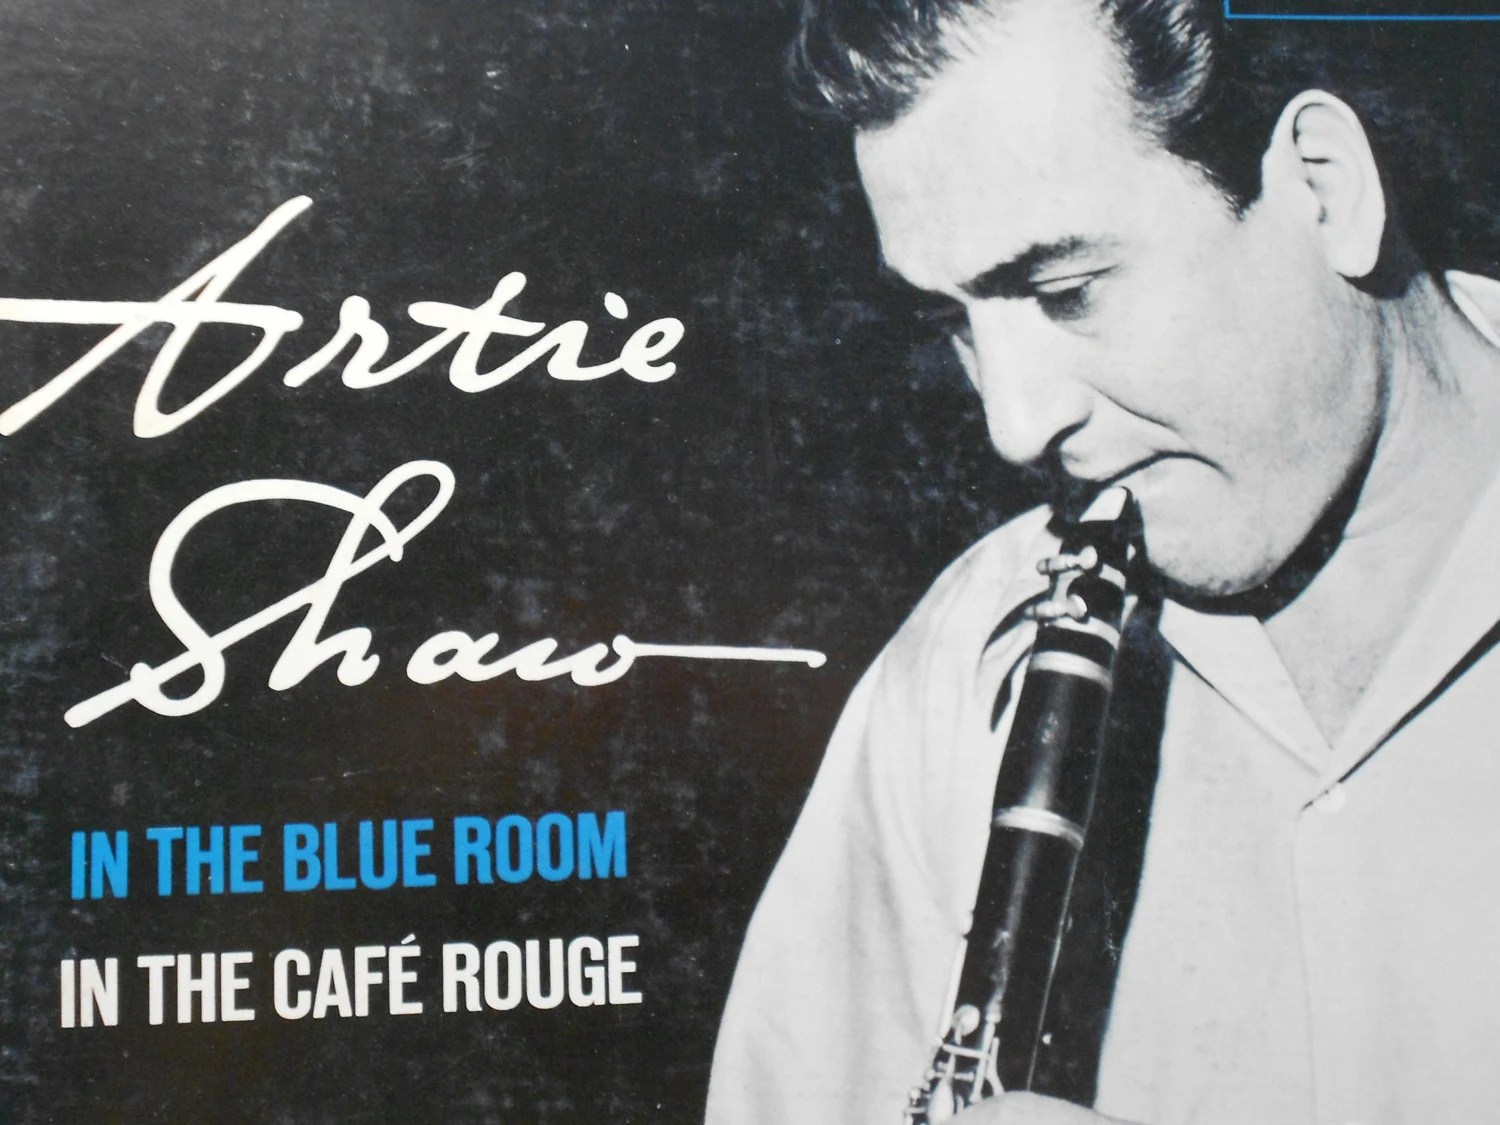 Artie Shaw Genre Artie Shaw In The Blue Room In The Cafe Rogue Vinyl Record